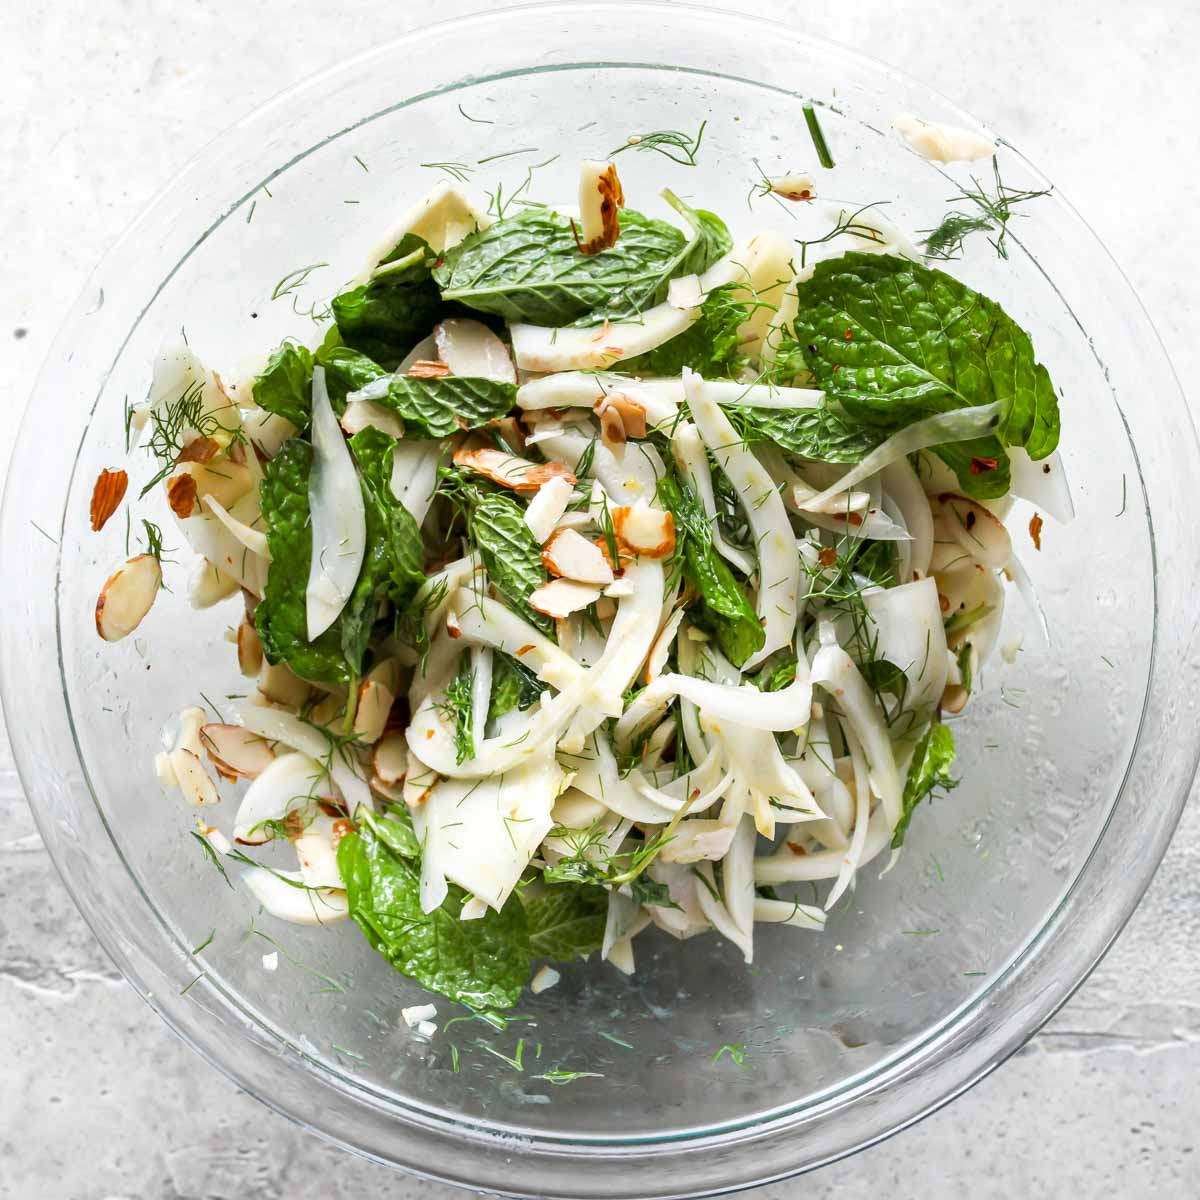 Shaved fennel, mint, and sliced almonds tossed in a clear bowl